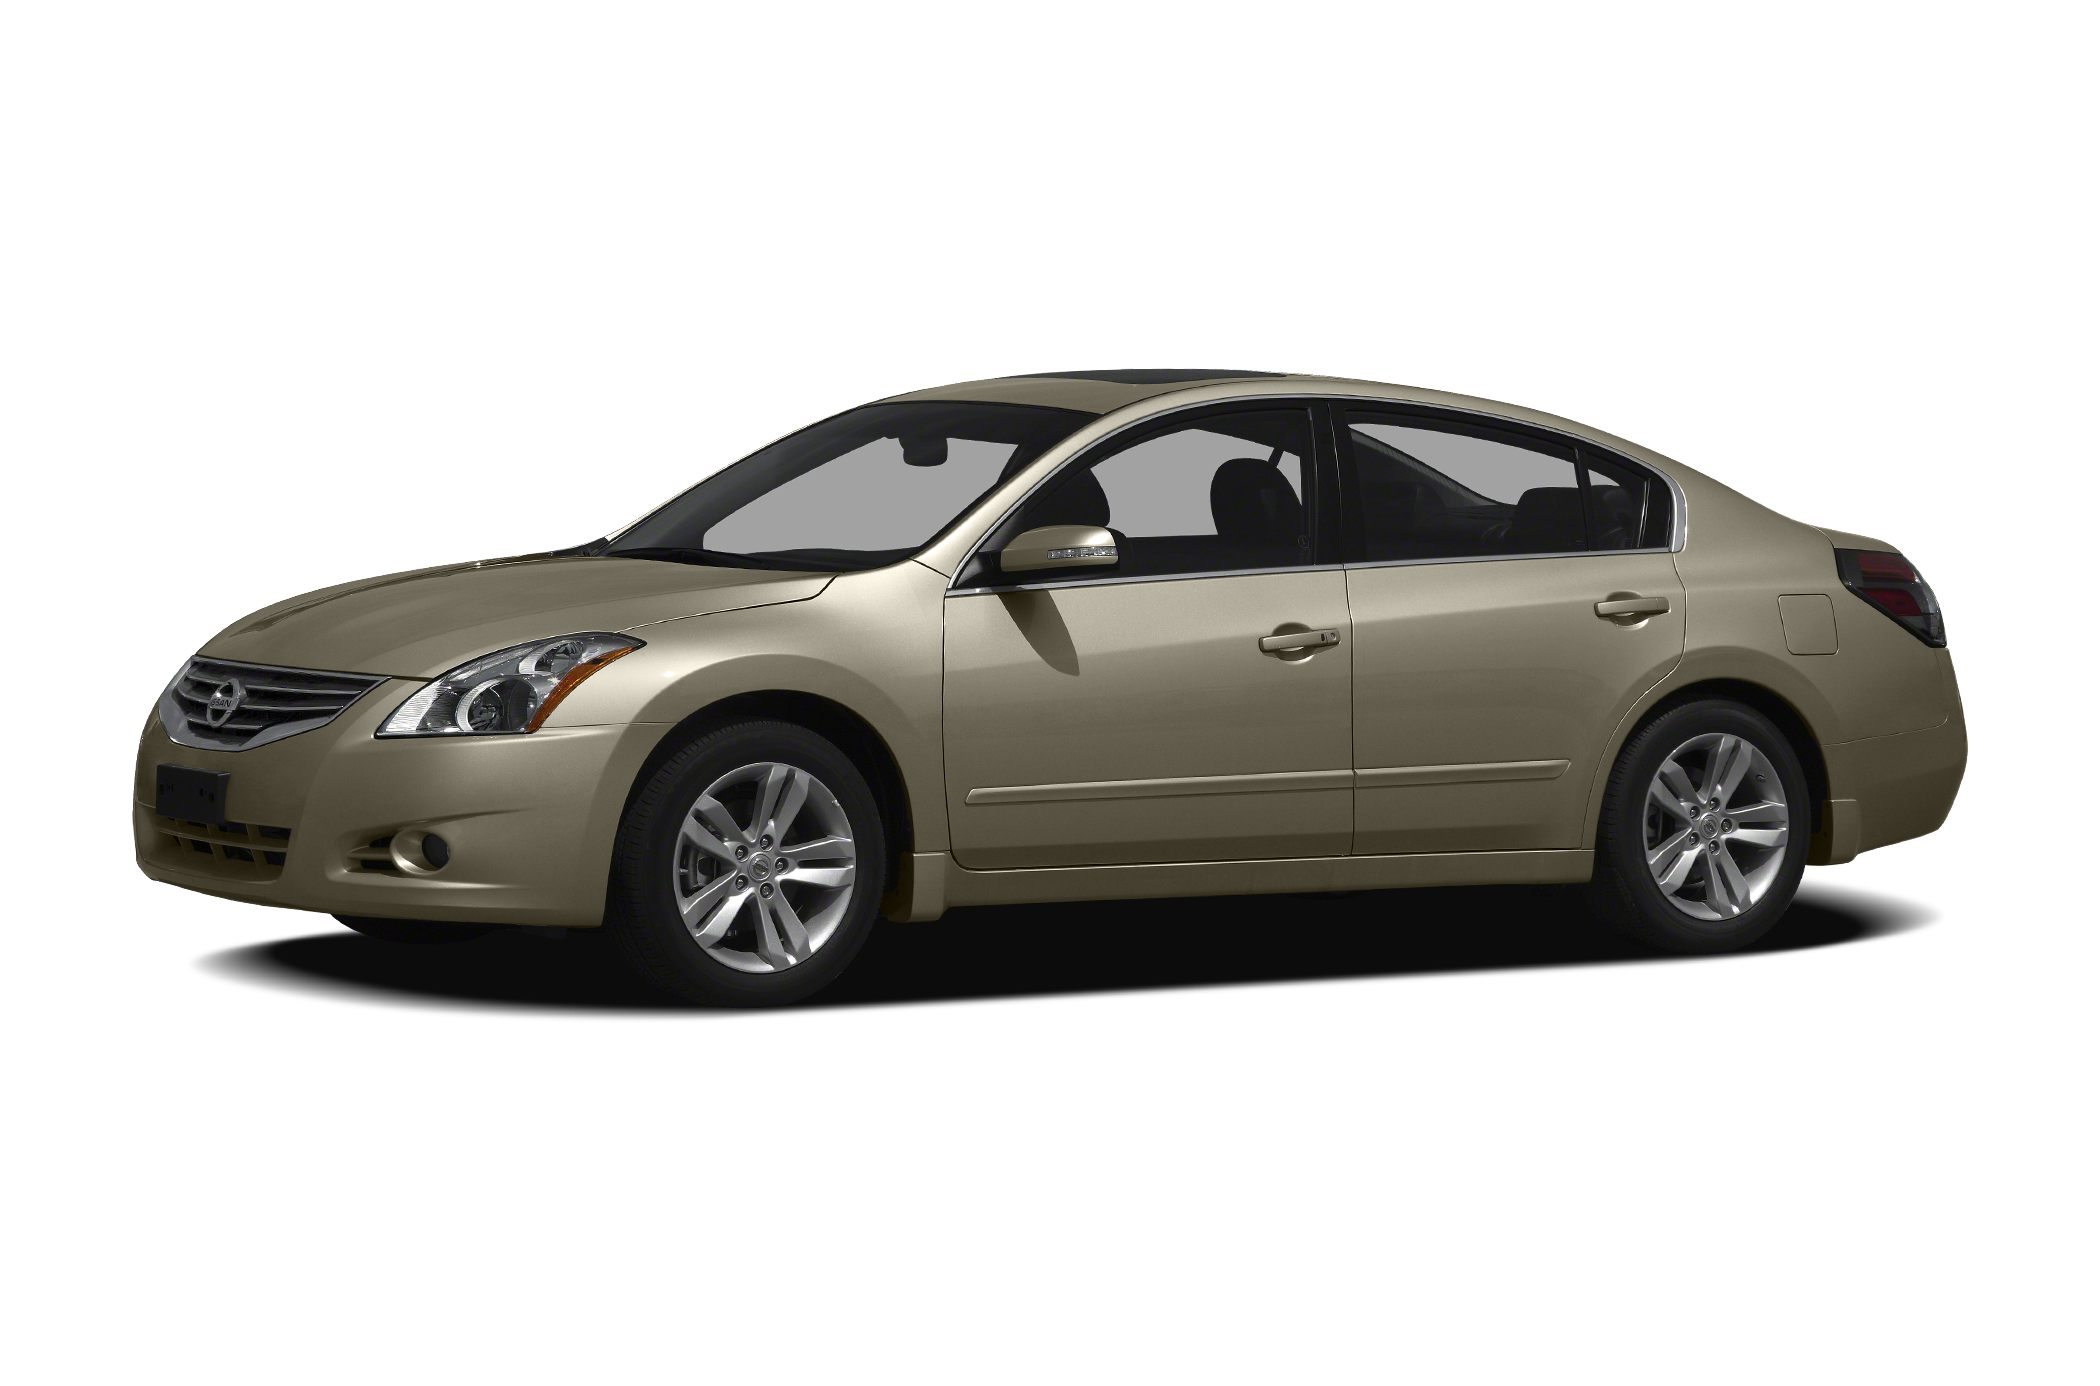 2011 Nissan Altima 2.5 S Sedan for sale in Green bay for $13,995 with 33,689 miles